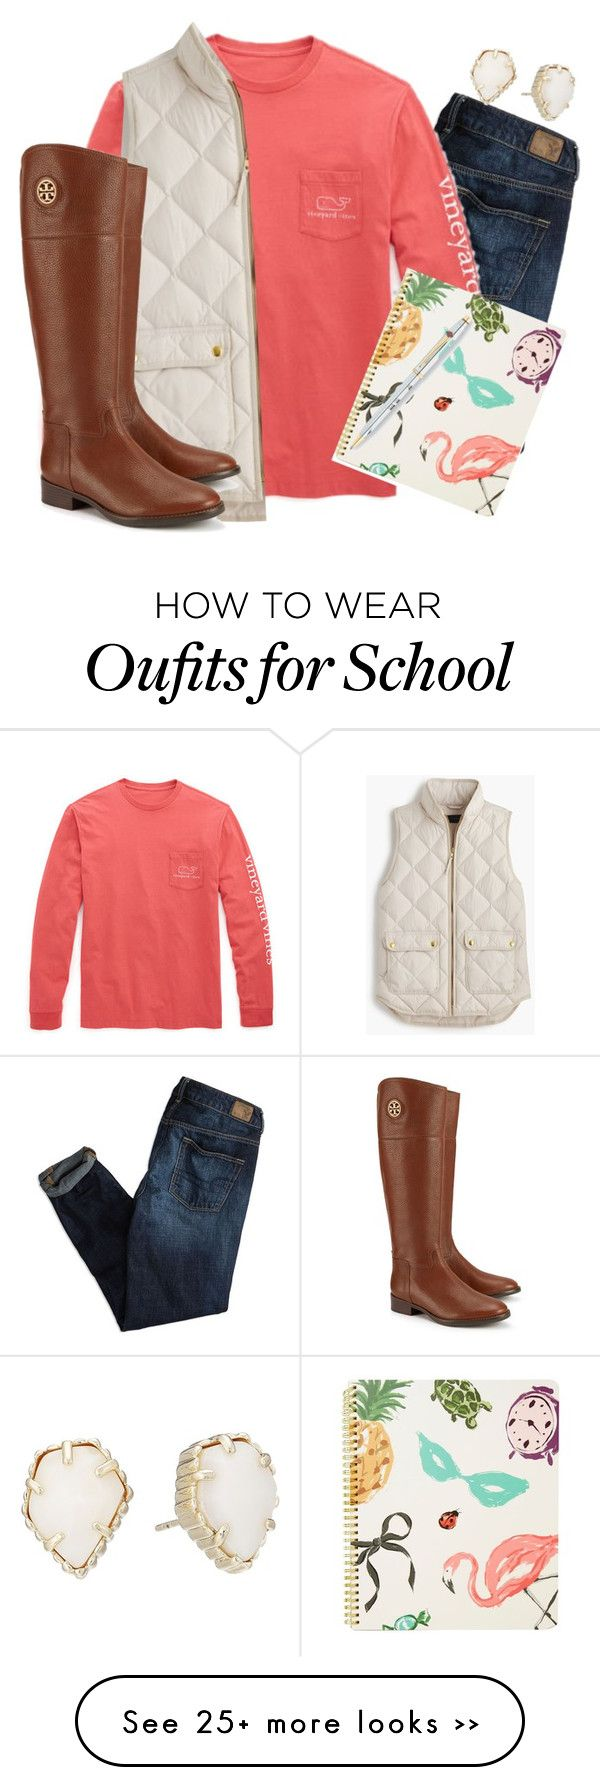 featuring American Eagle Outfitters, Vineyard Vines, J.Crew, Tory Burch, Kendra Scott, Kate Spade and vintage